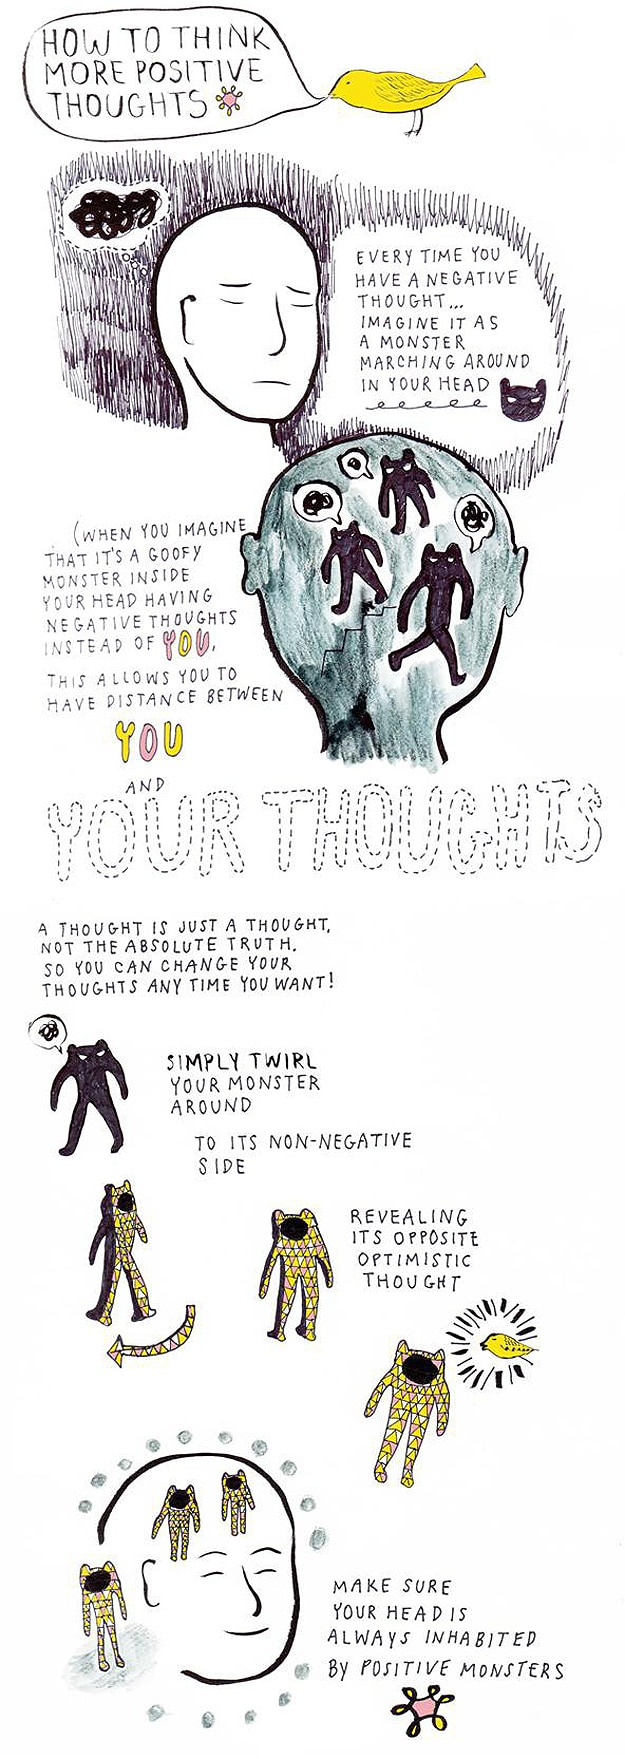 How To: Think More Positive Thoughts